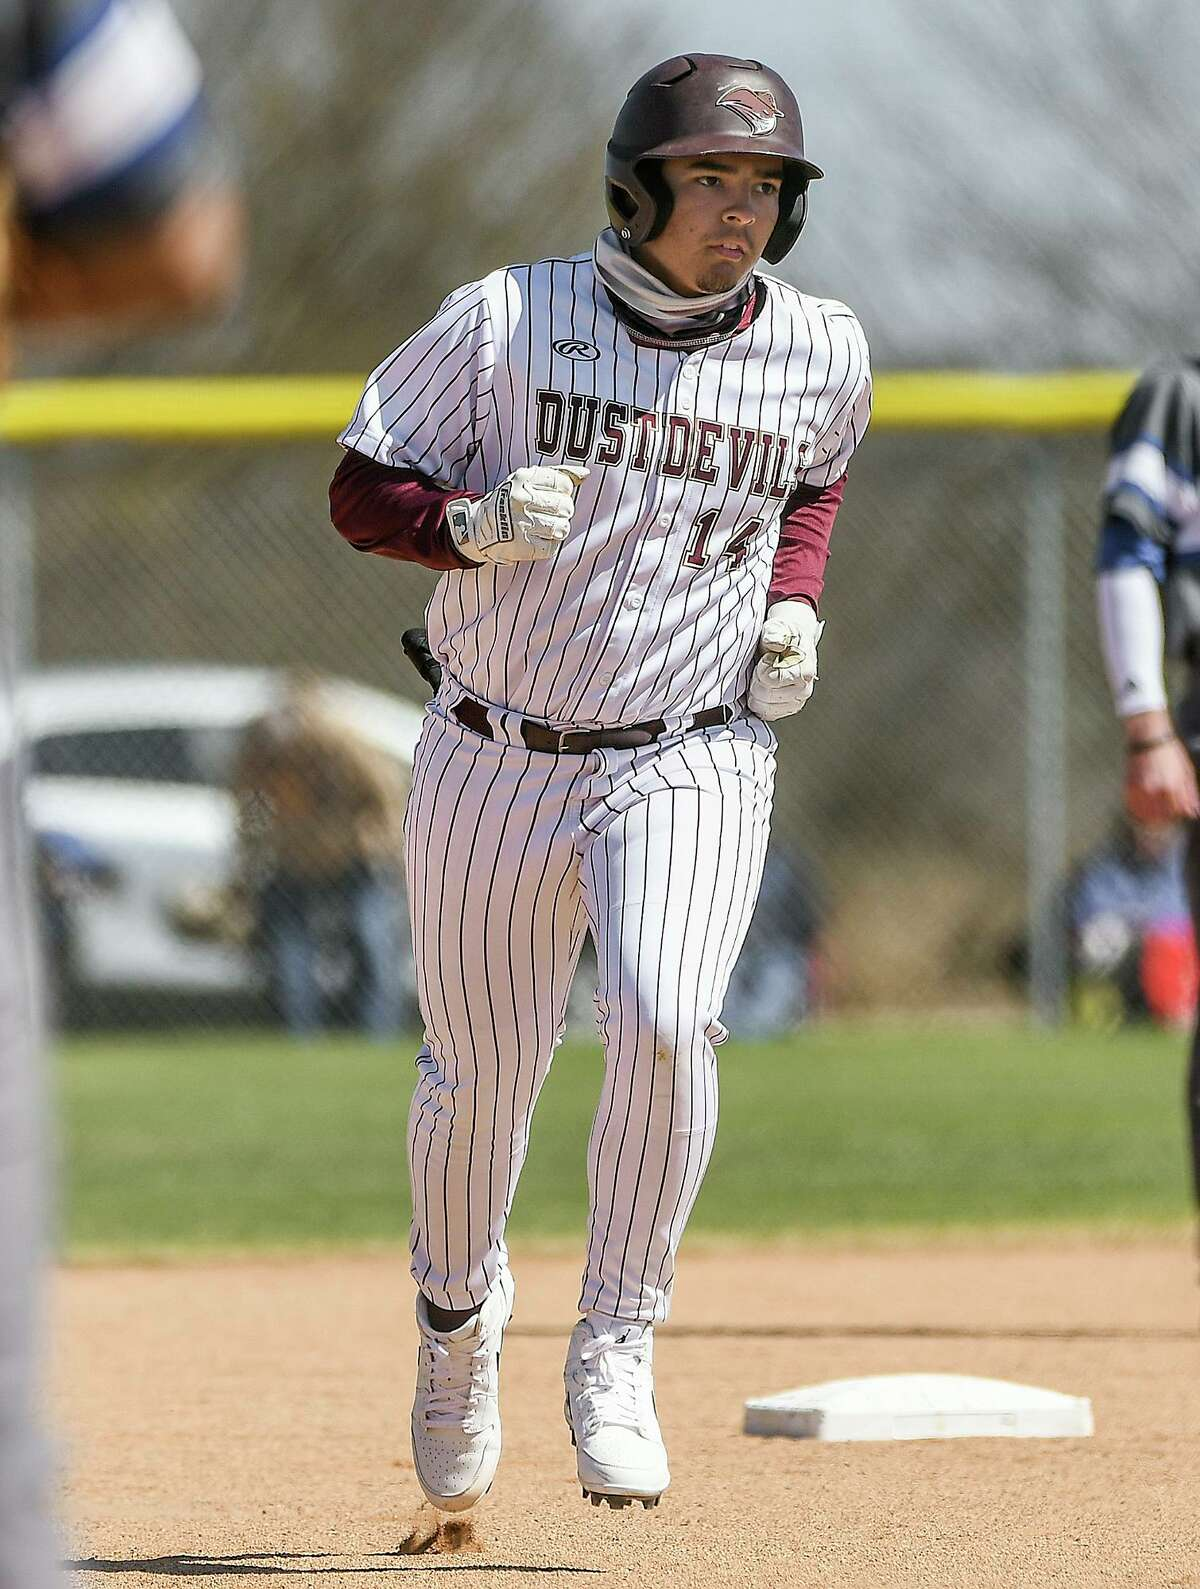 Jerry Villarreal homered in TAMIU's 12-6 victory over Texas A&M-Kingsville on Saturday.